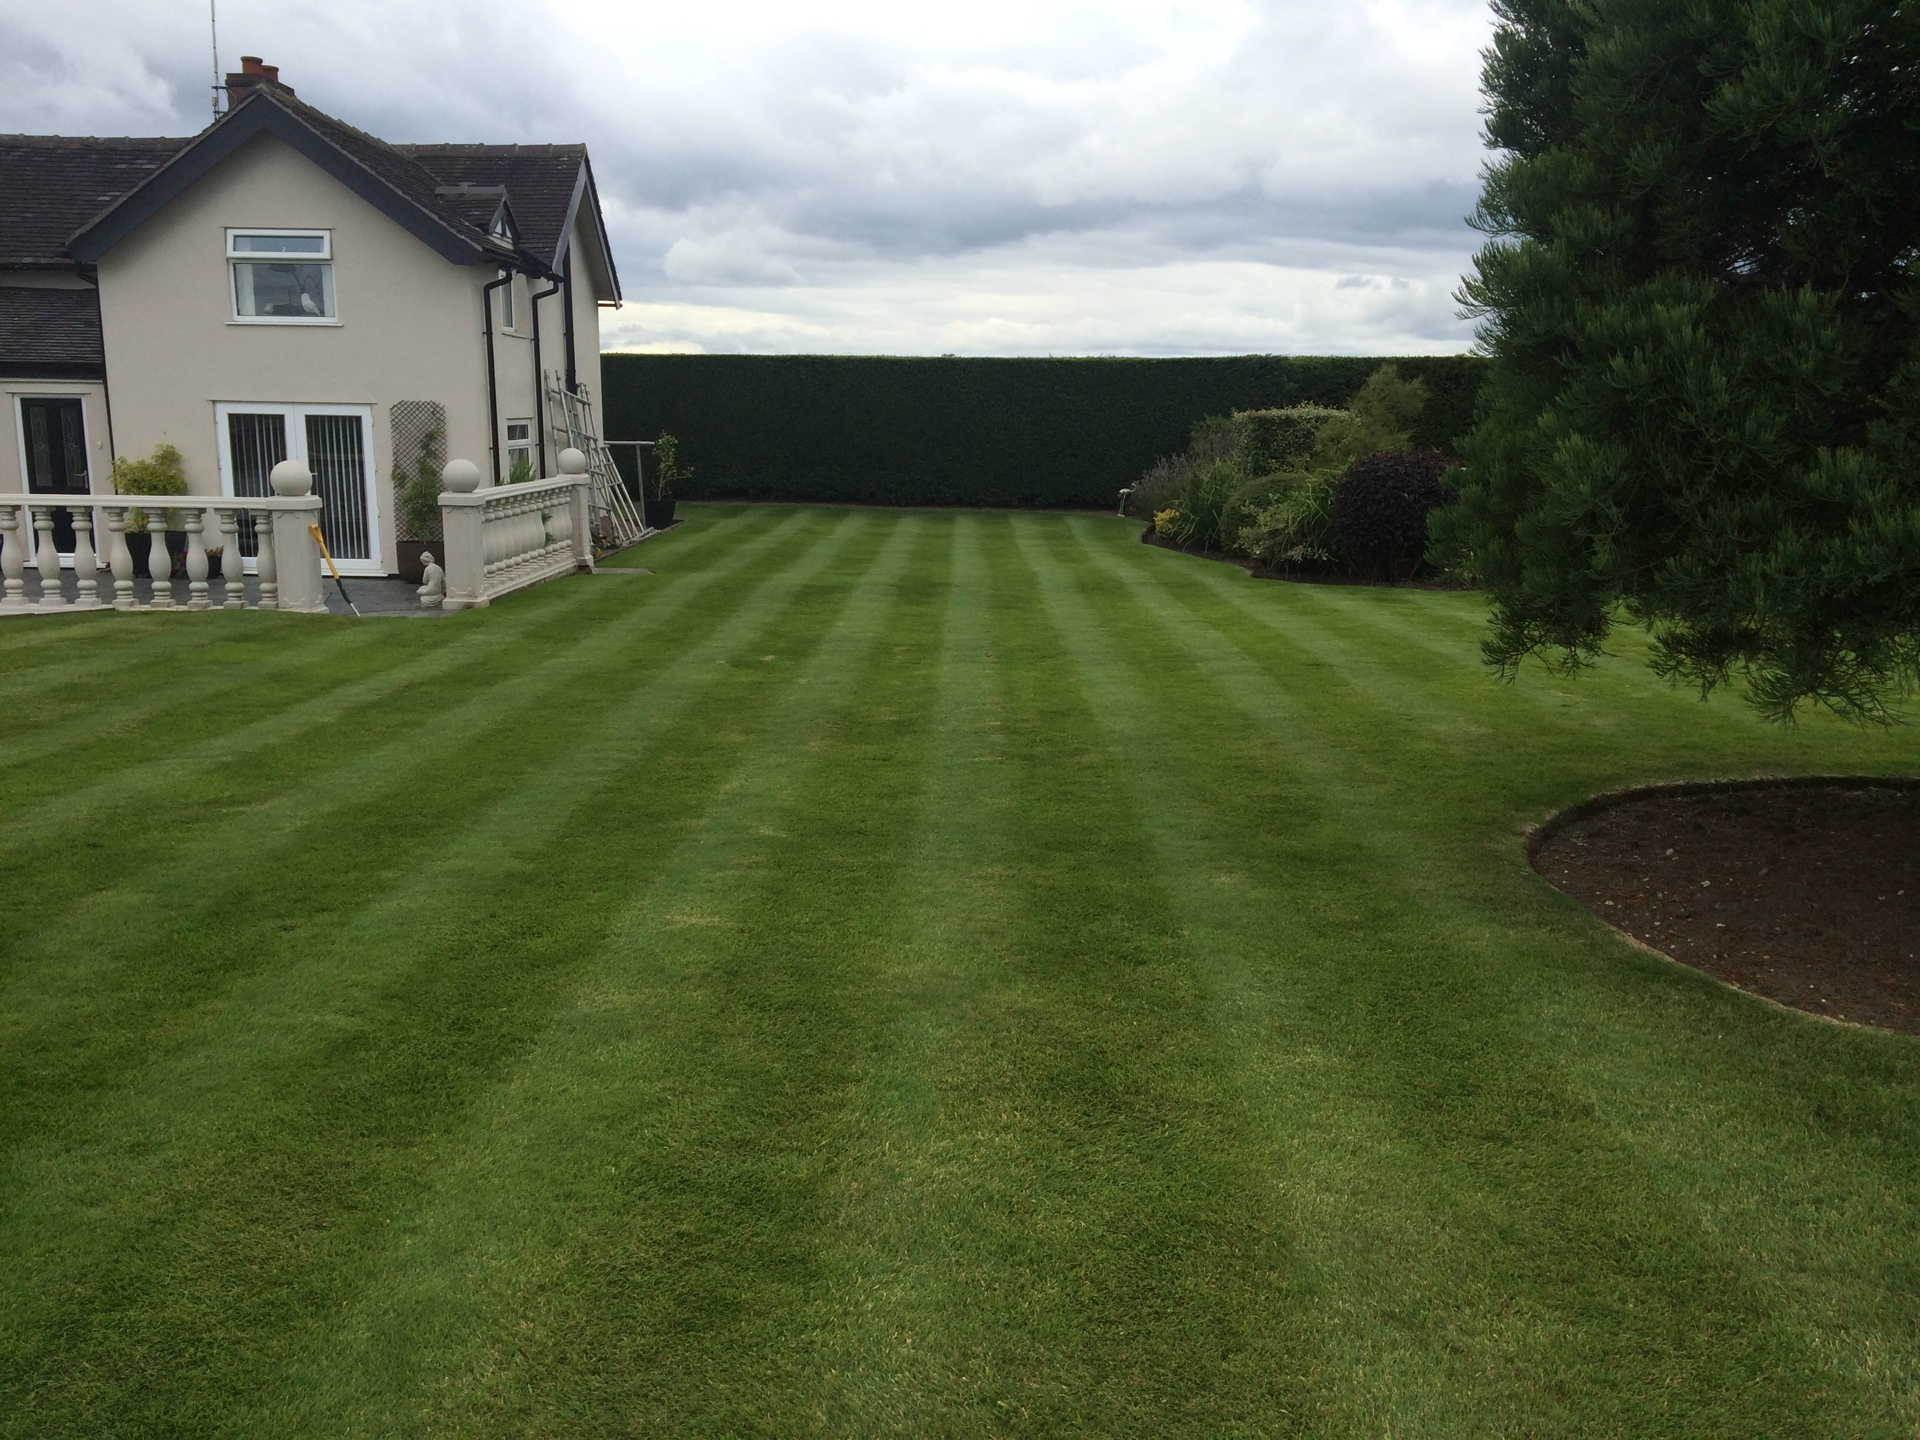 Garden Maintenance Crewe - Lawn Maintenance and Hedge Cutting